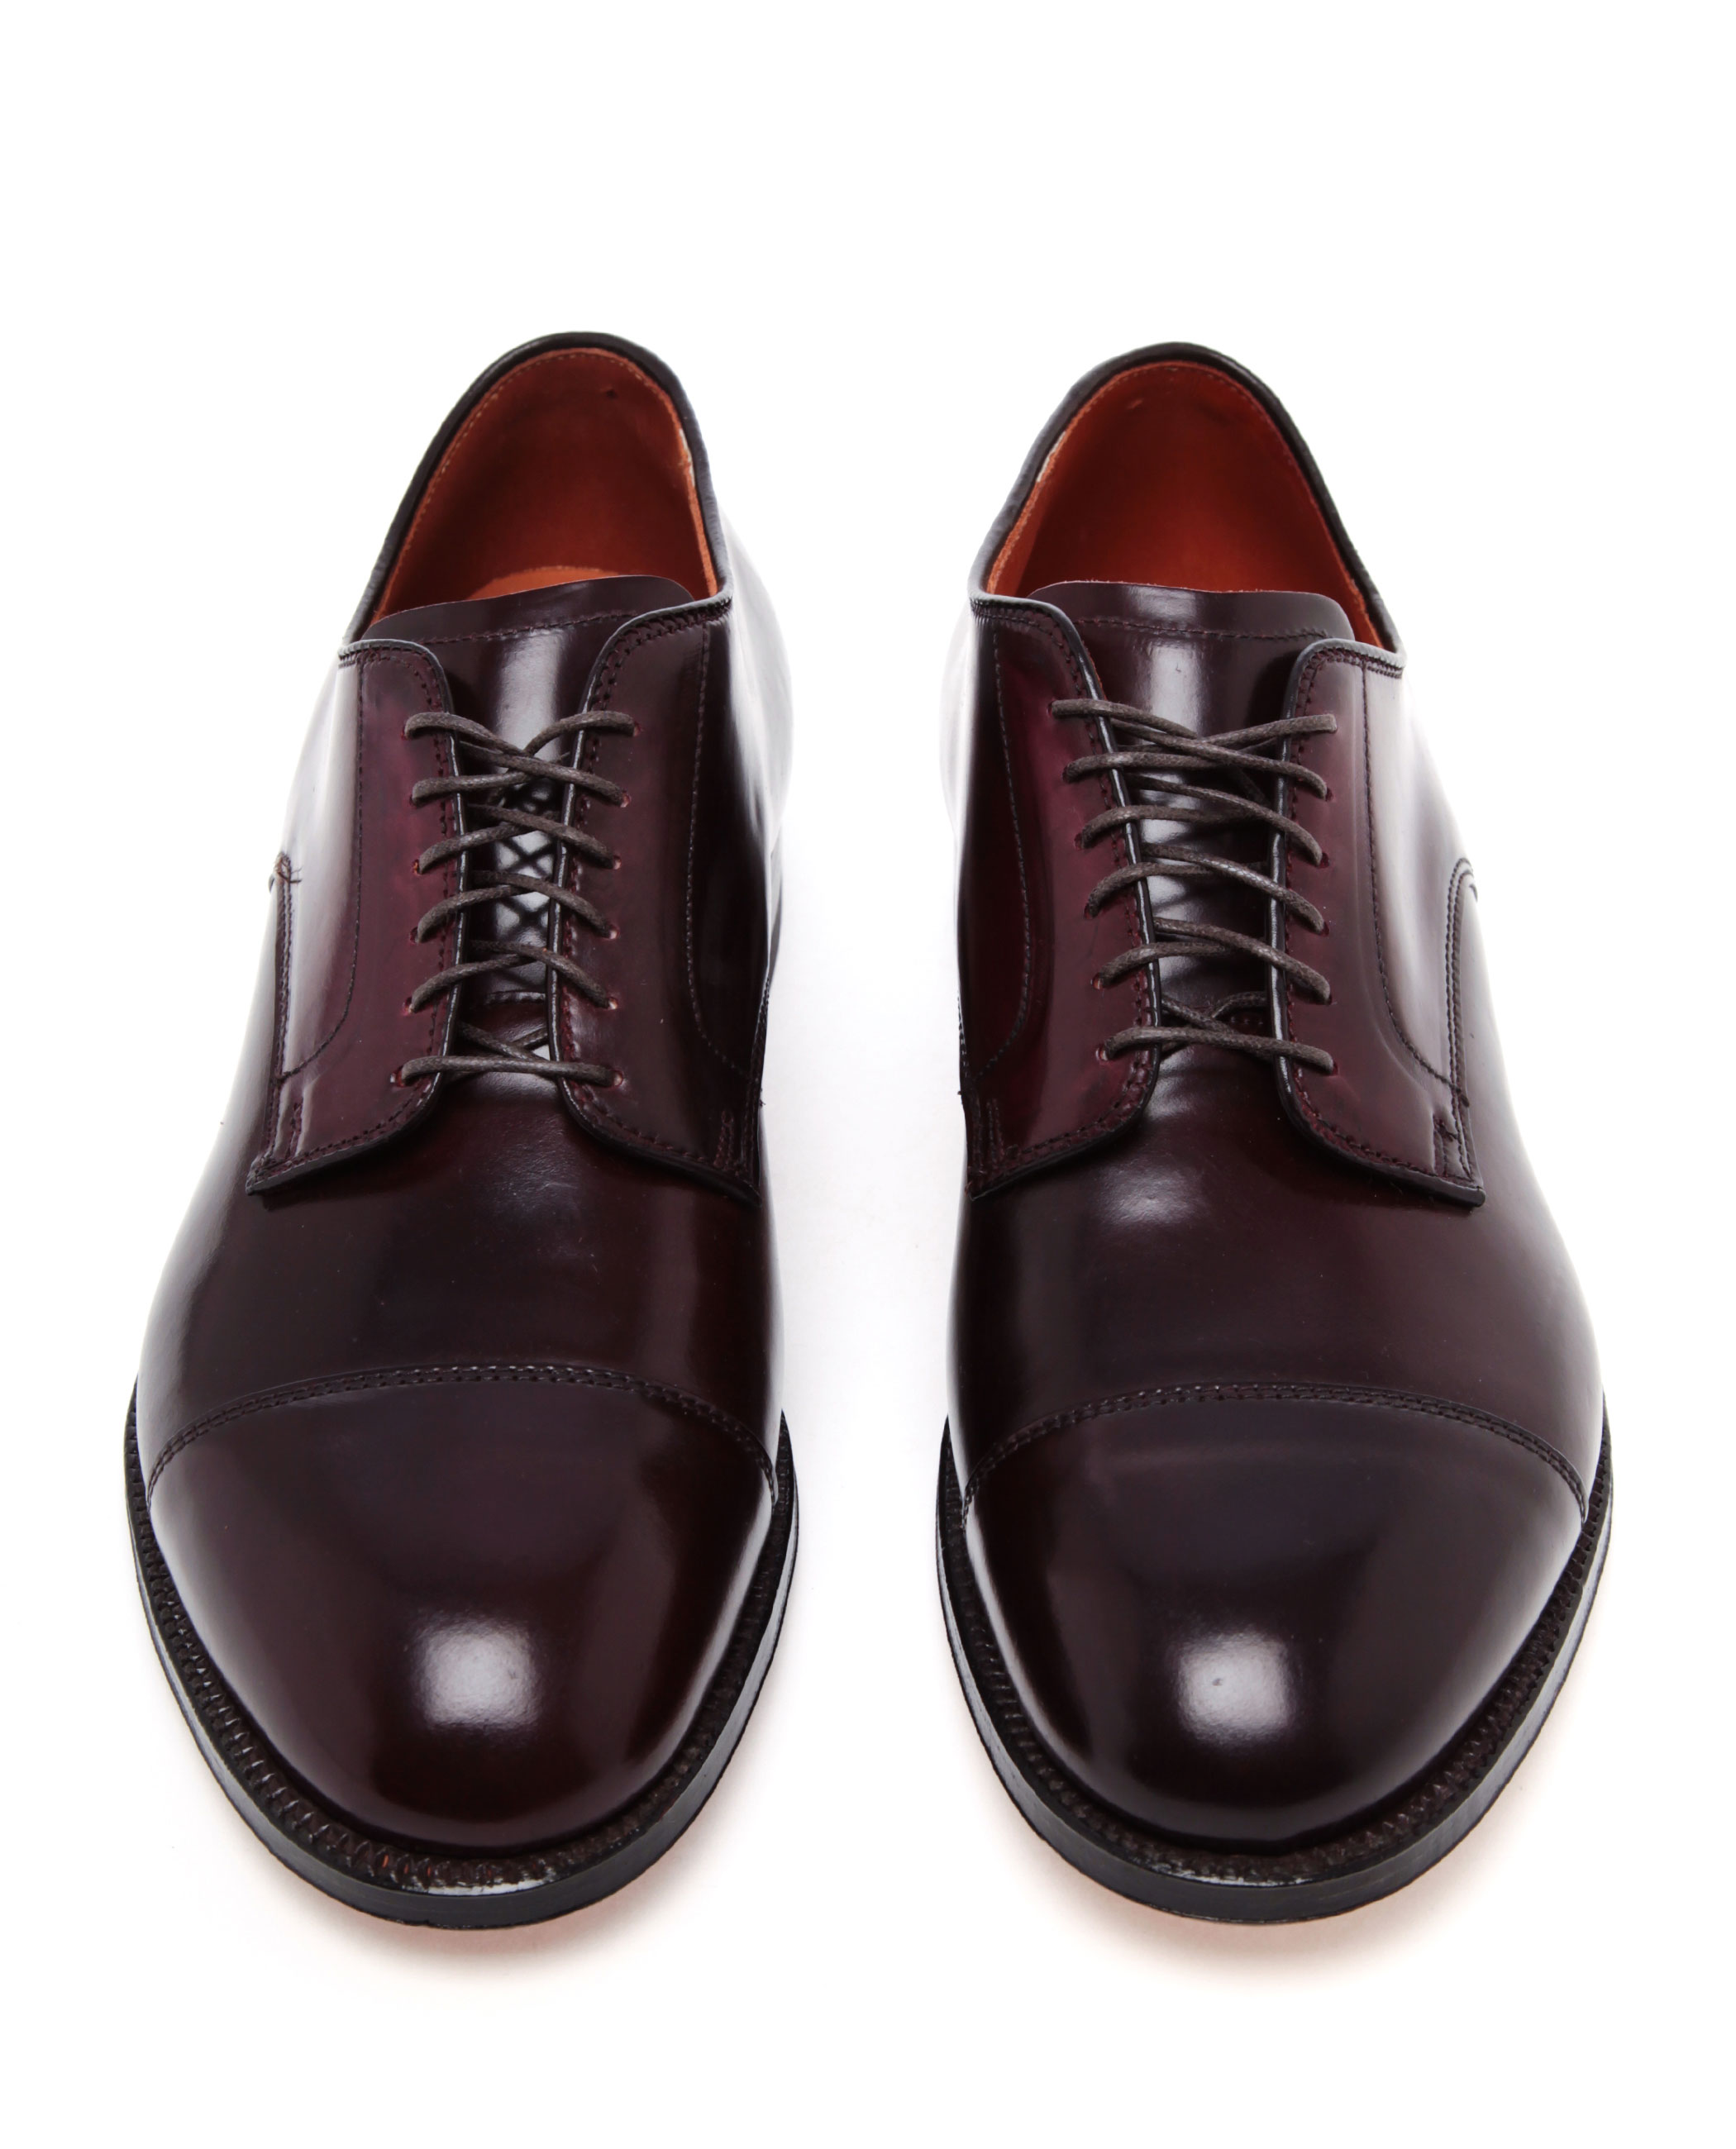 Alden Cordovan Lace Up Shoes